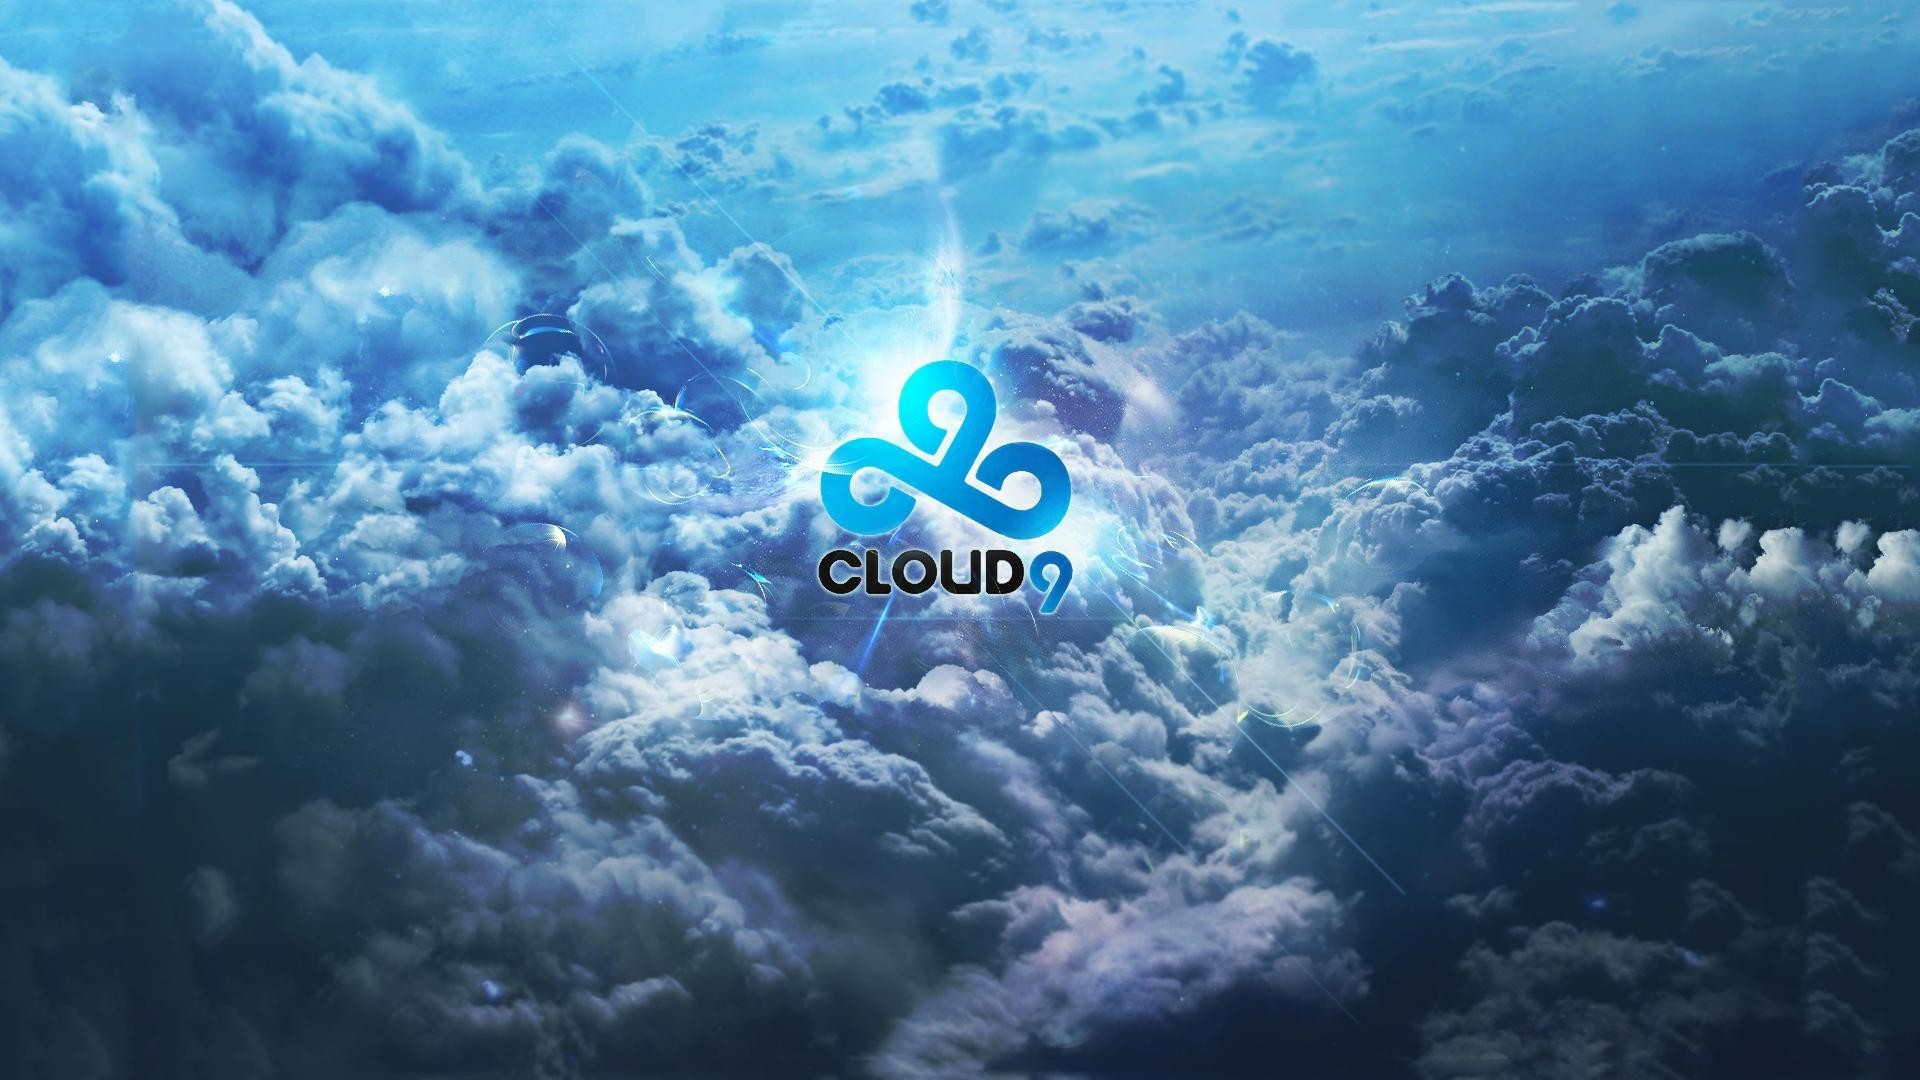 Clouds-league-of-legends-1920x1080-league-legends-via-www-all-in-wallpaper-wp3604141